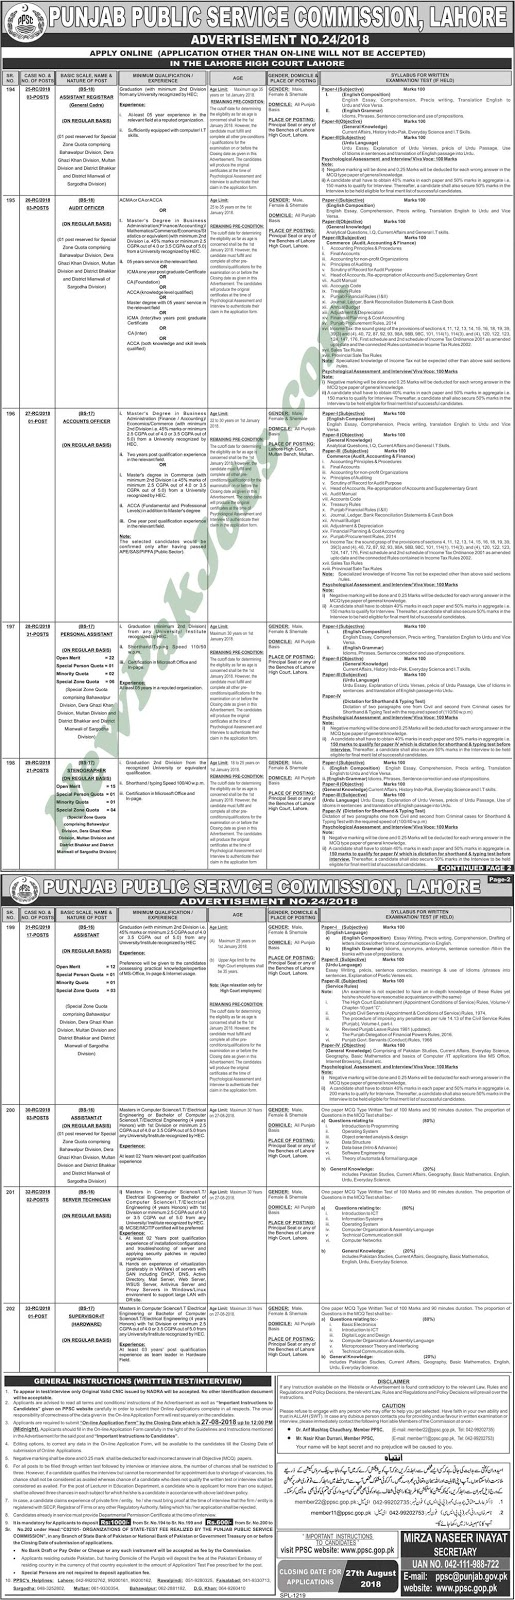 PPSC Jobs Advertisement No 24/2018, Punjab Public Service Commission